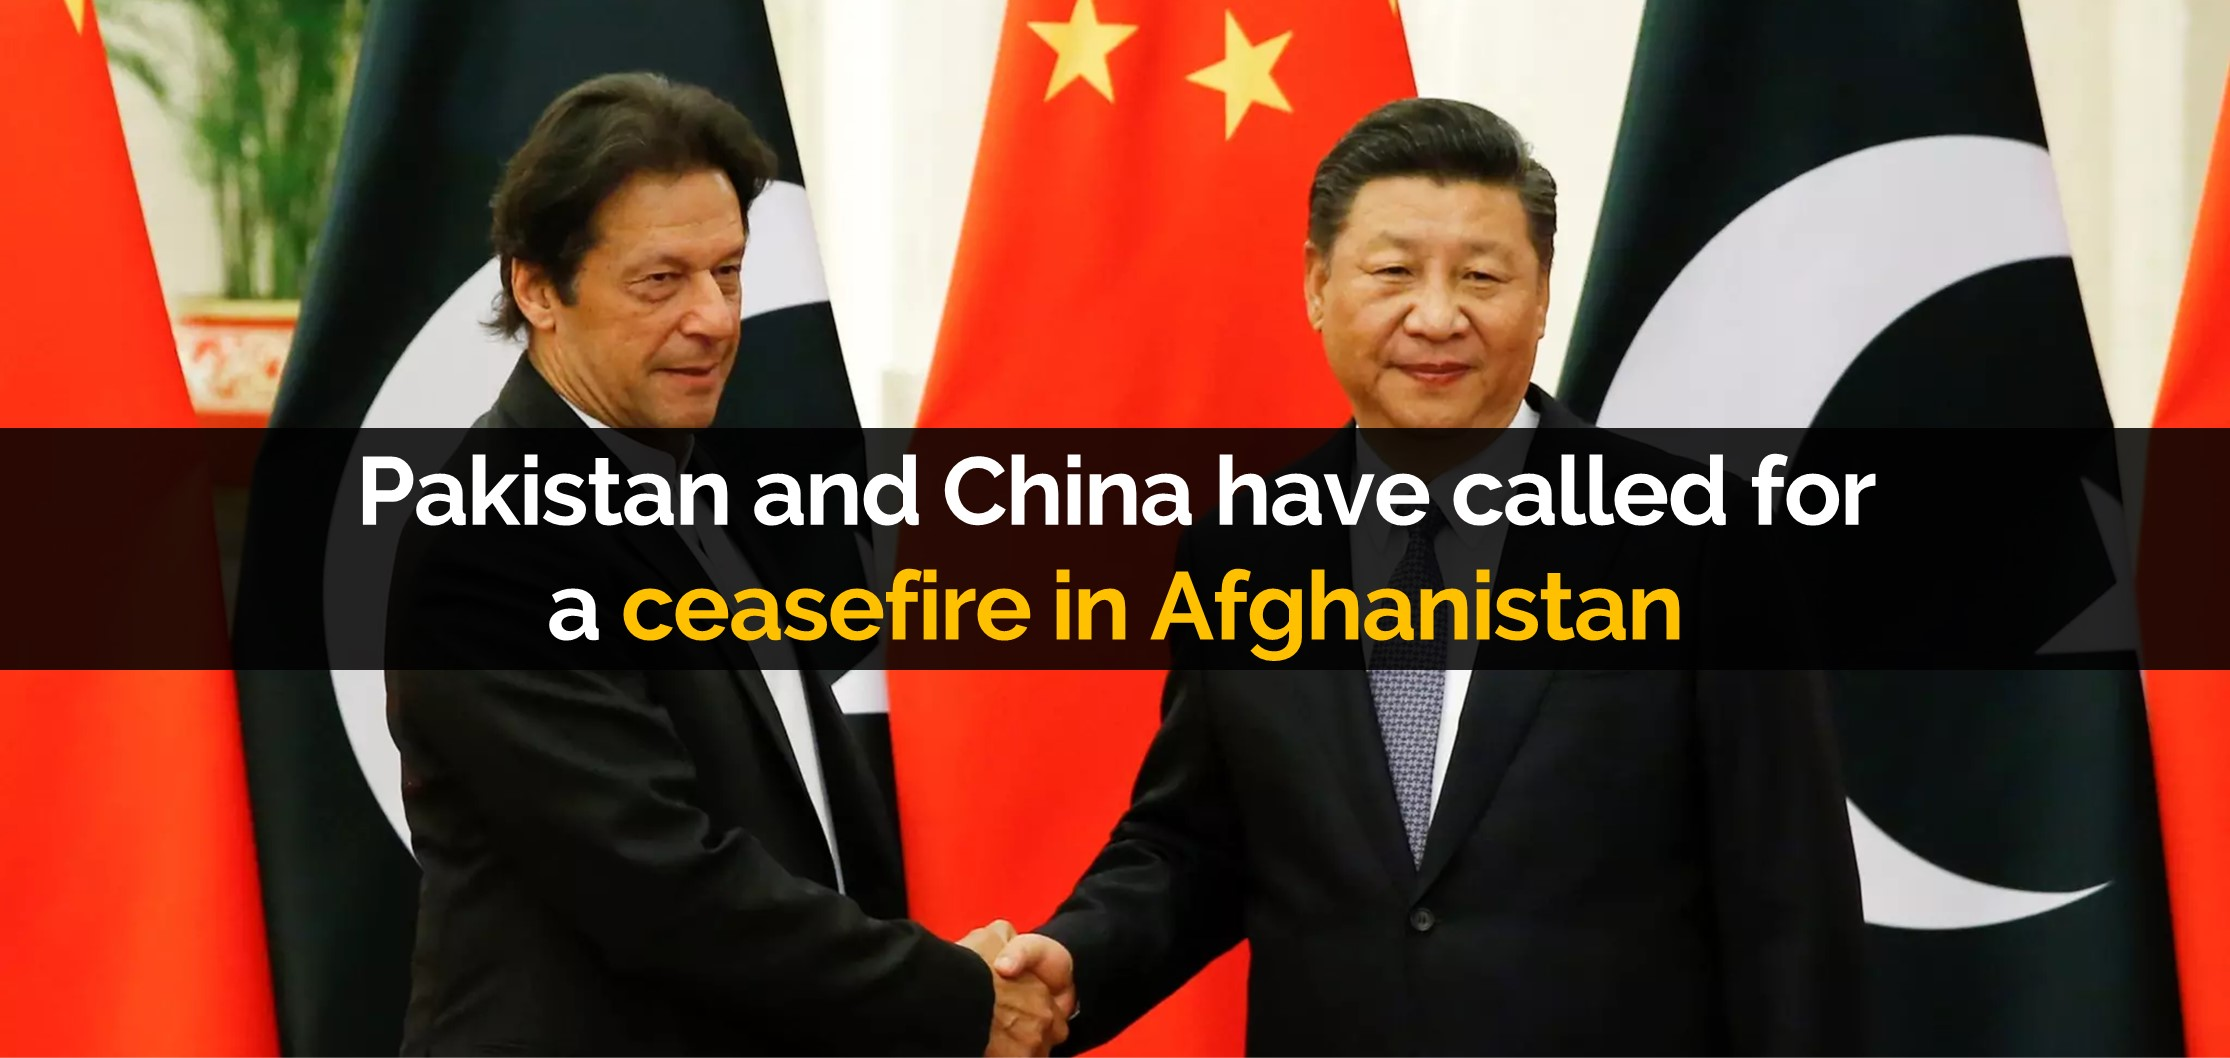 Pakistan and China have called for a ceasefire in Afghanistan